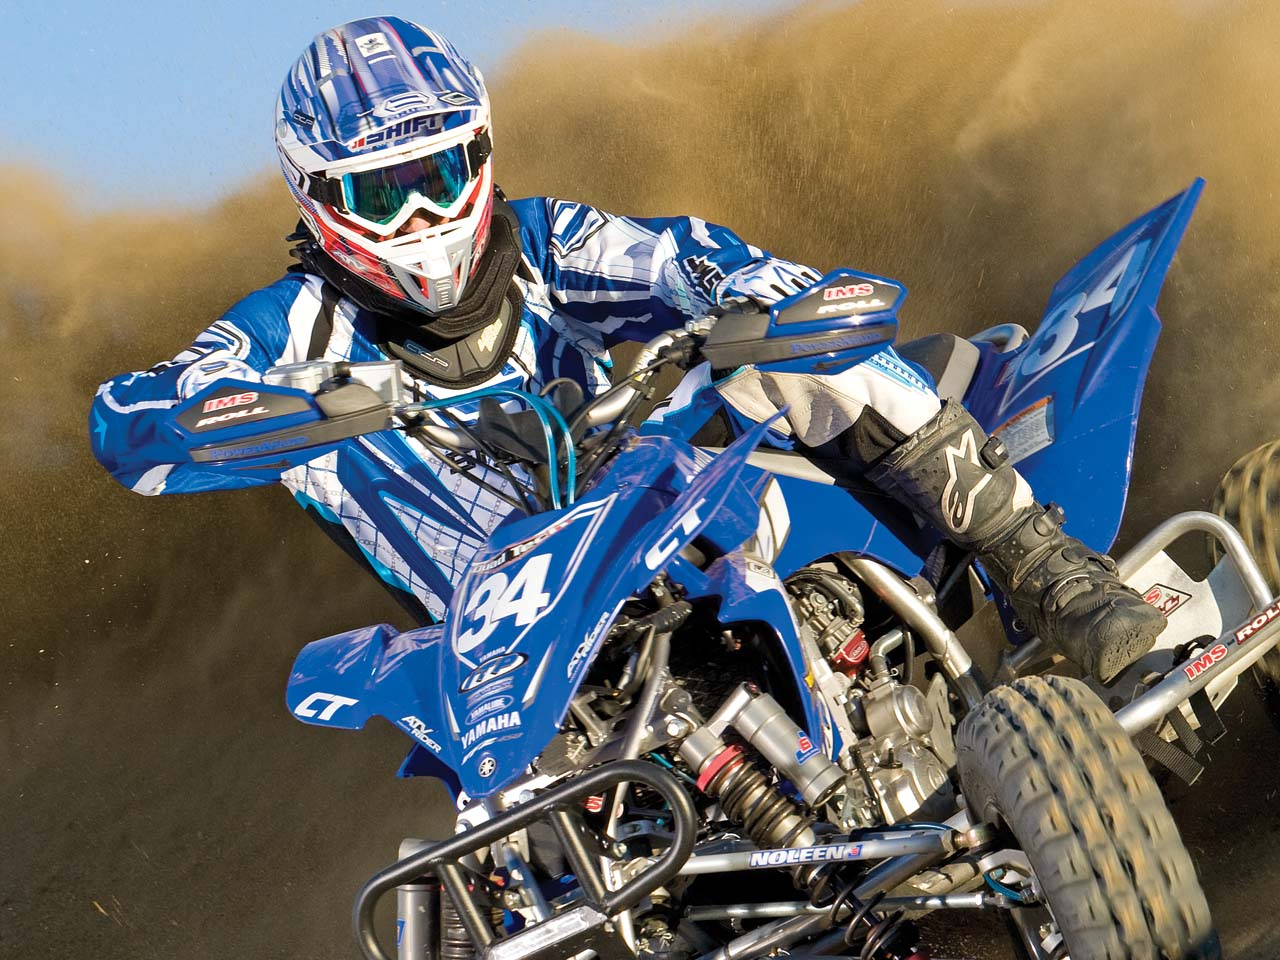 vendor.2012.leatt-brace.riding.sport-atv.jpg